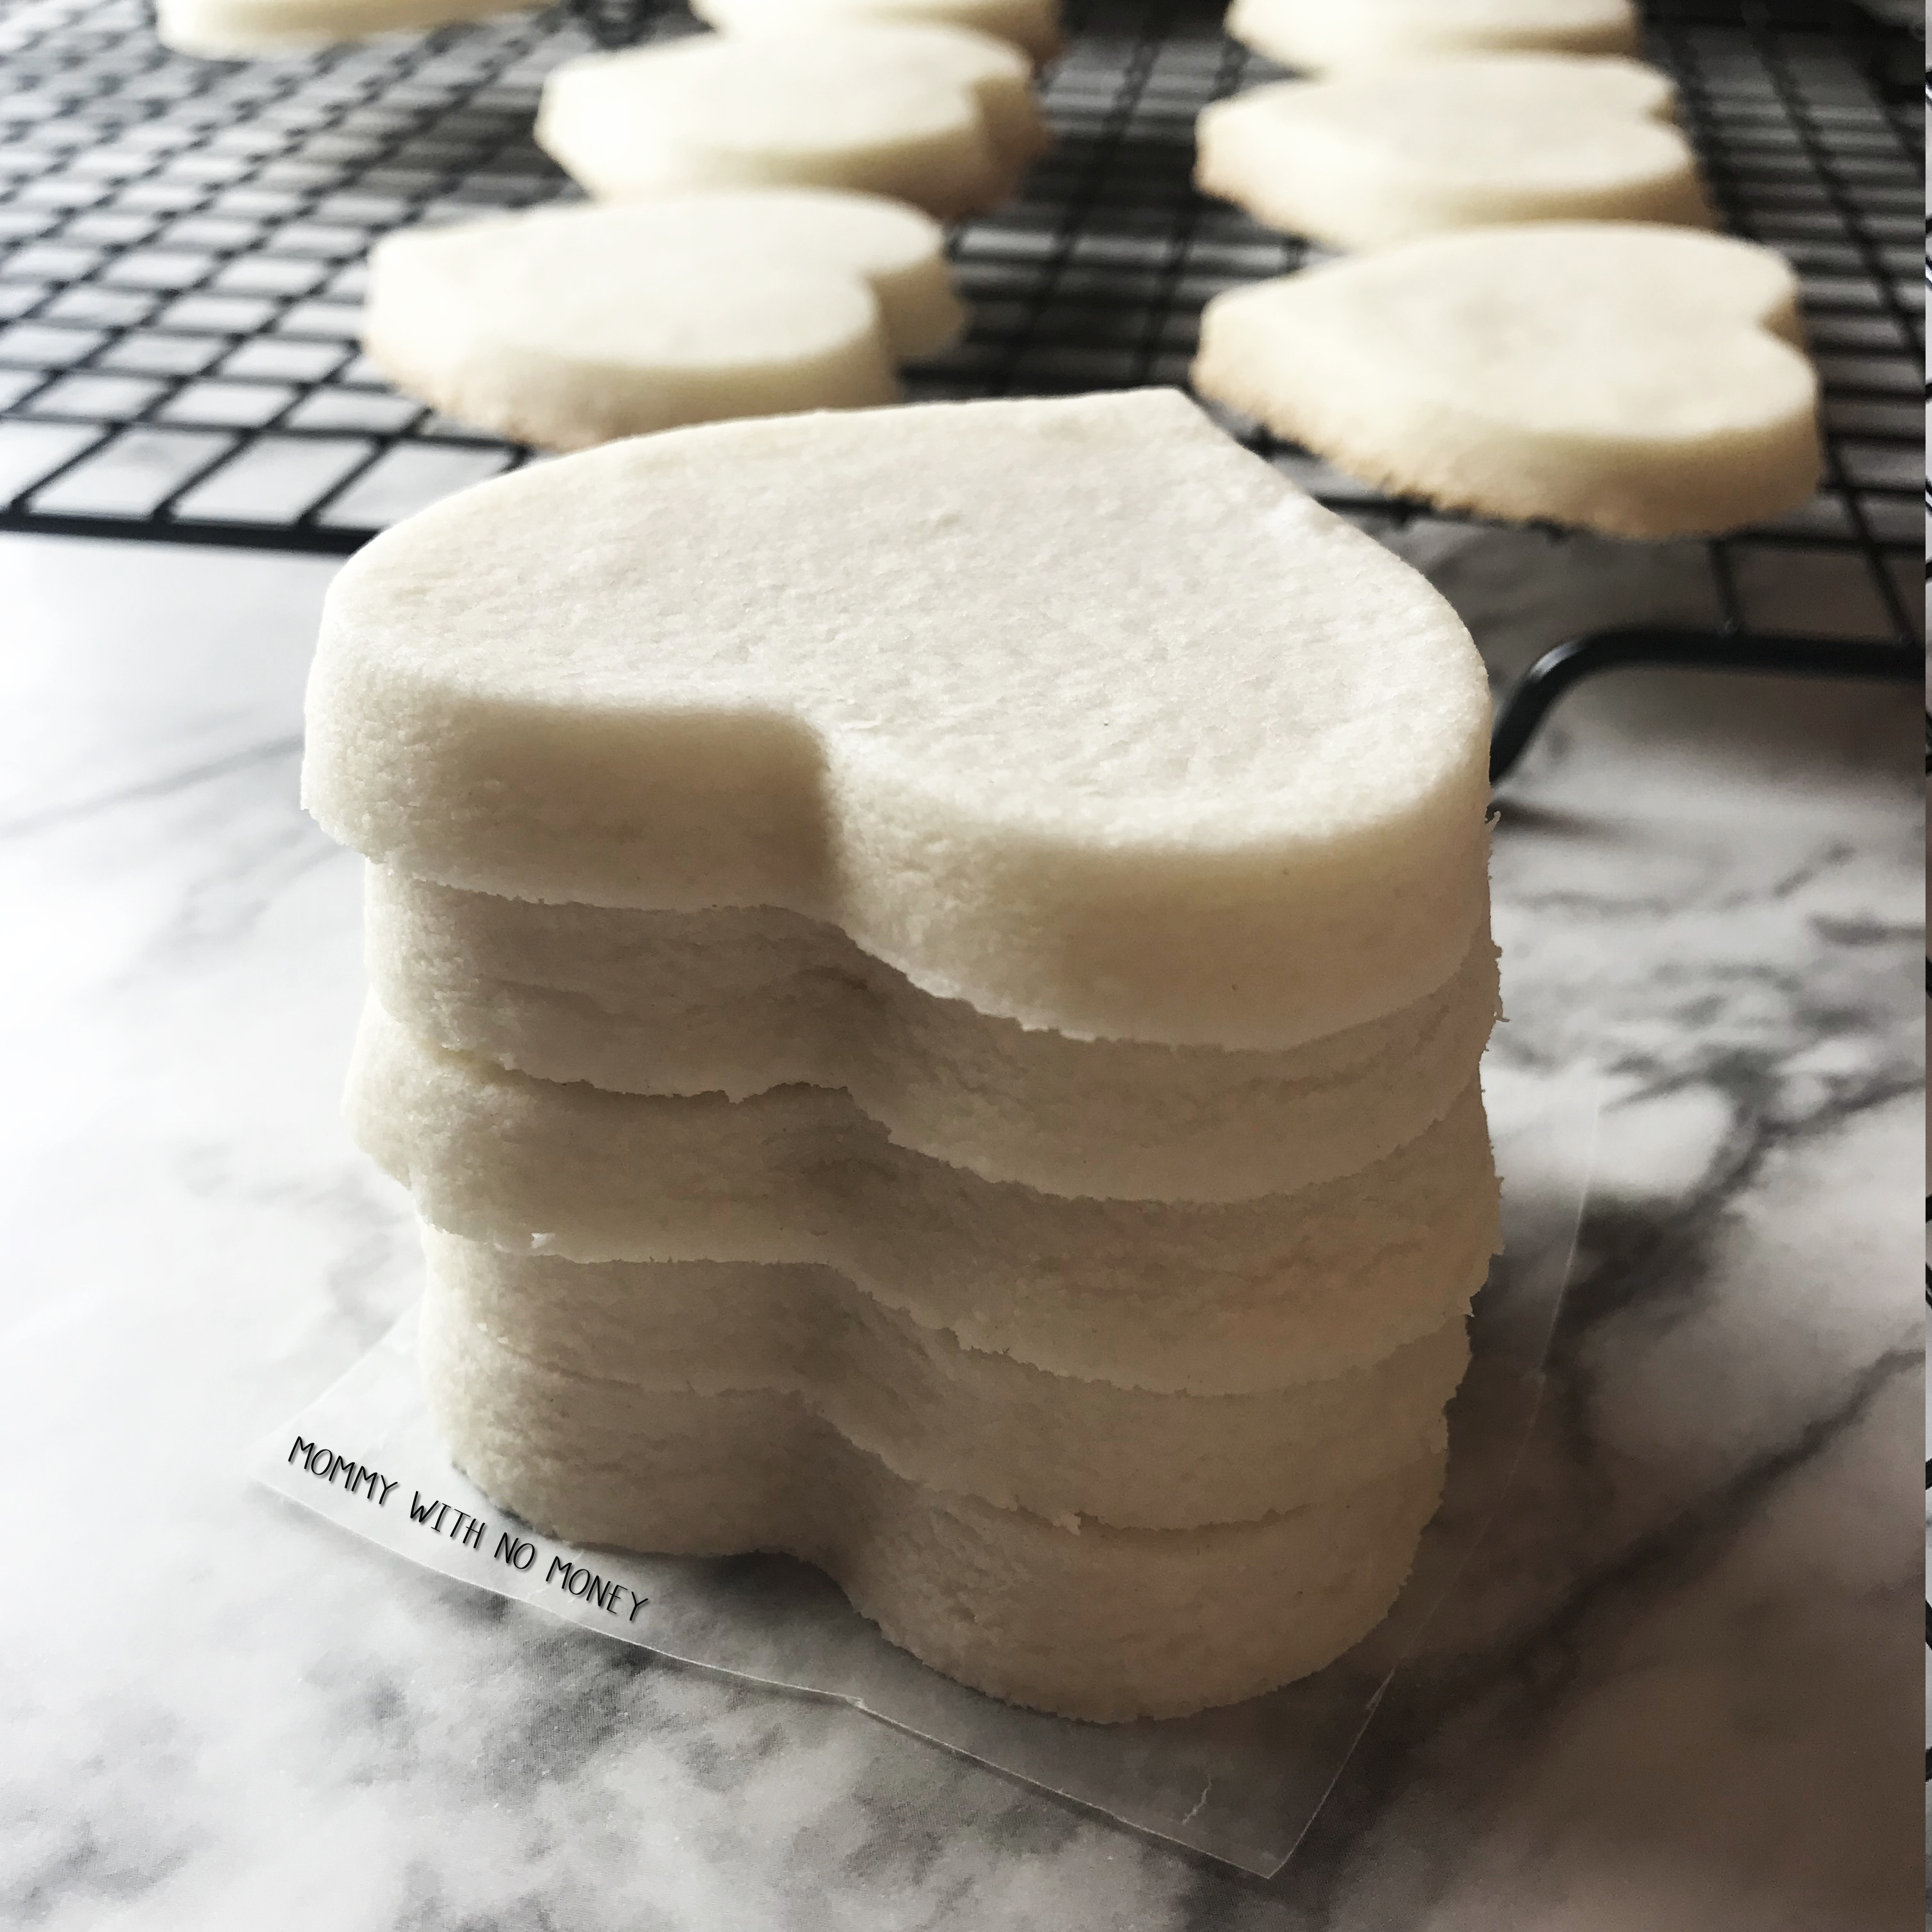 4 Ingredient Shortbread Cookie on Mommy with No Money